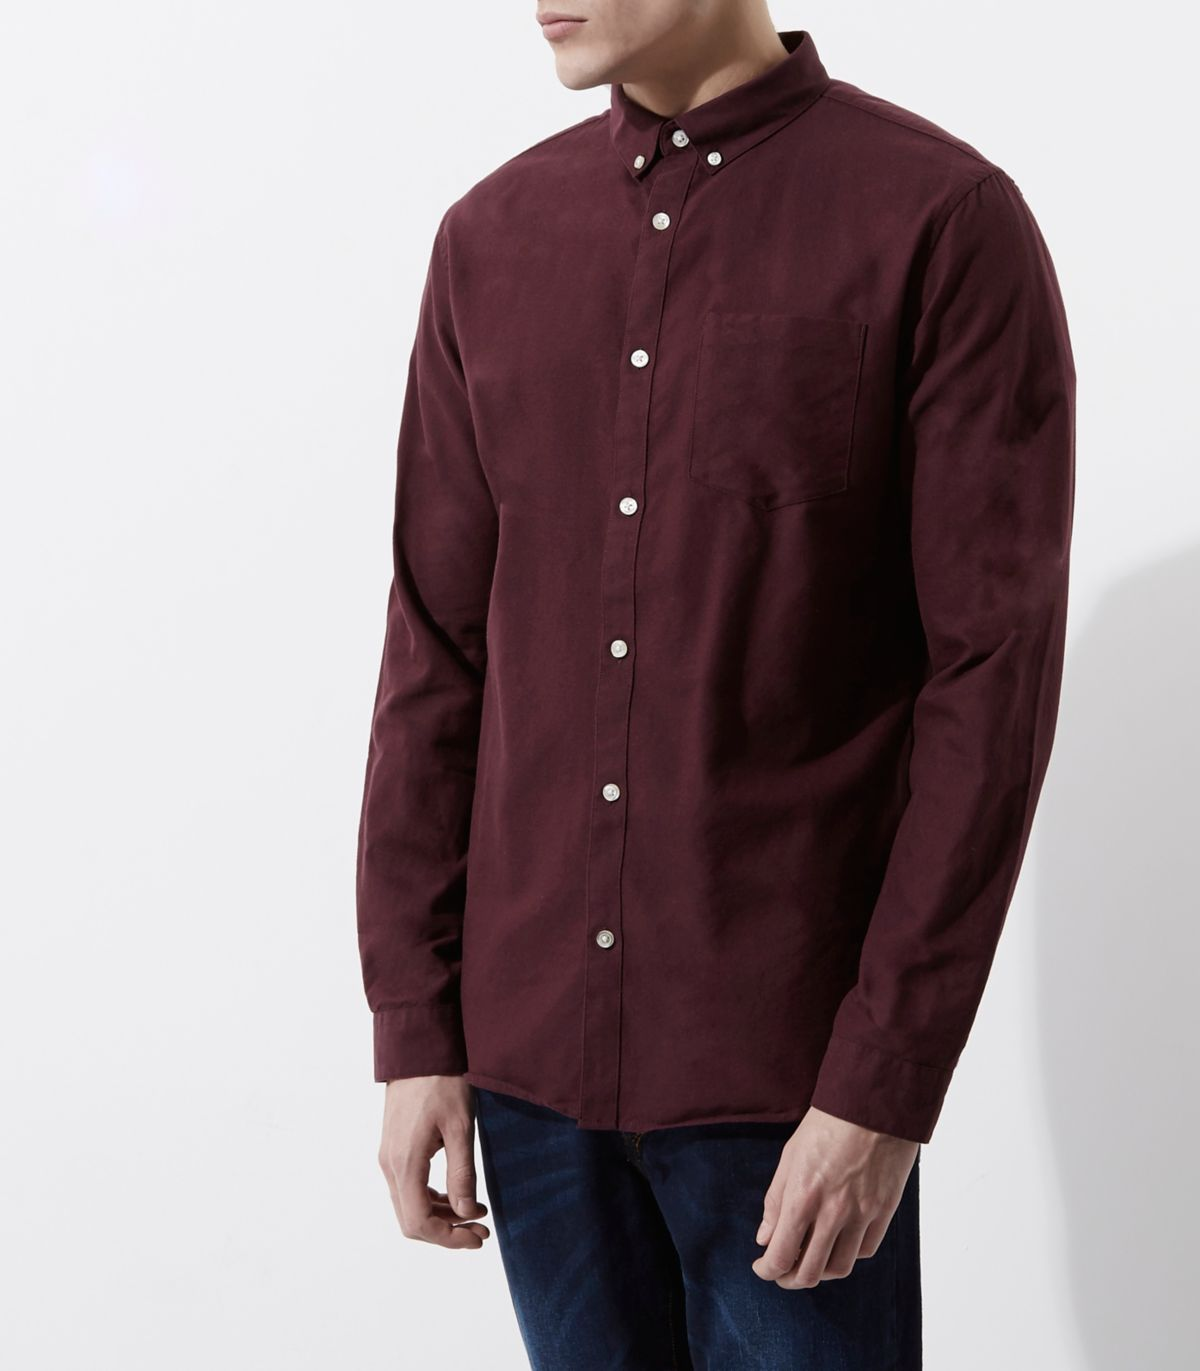 Burgundy casual button-down Oxford shirt